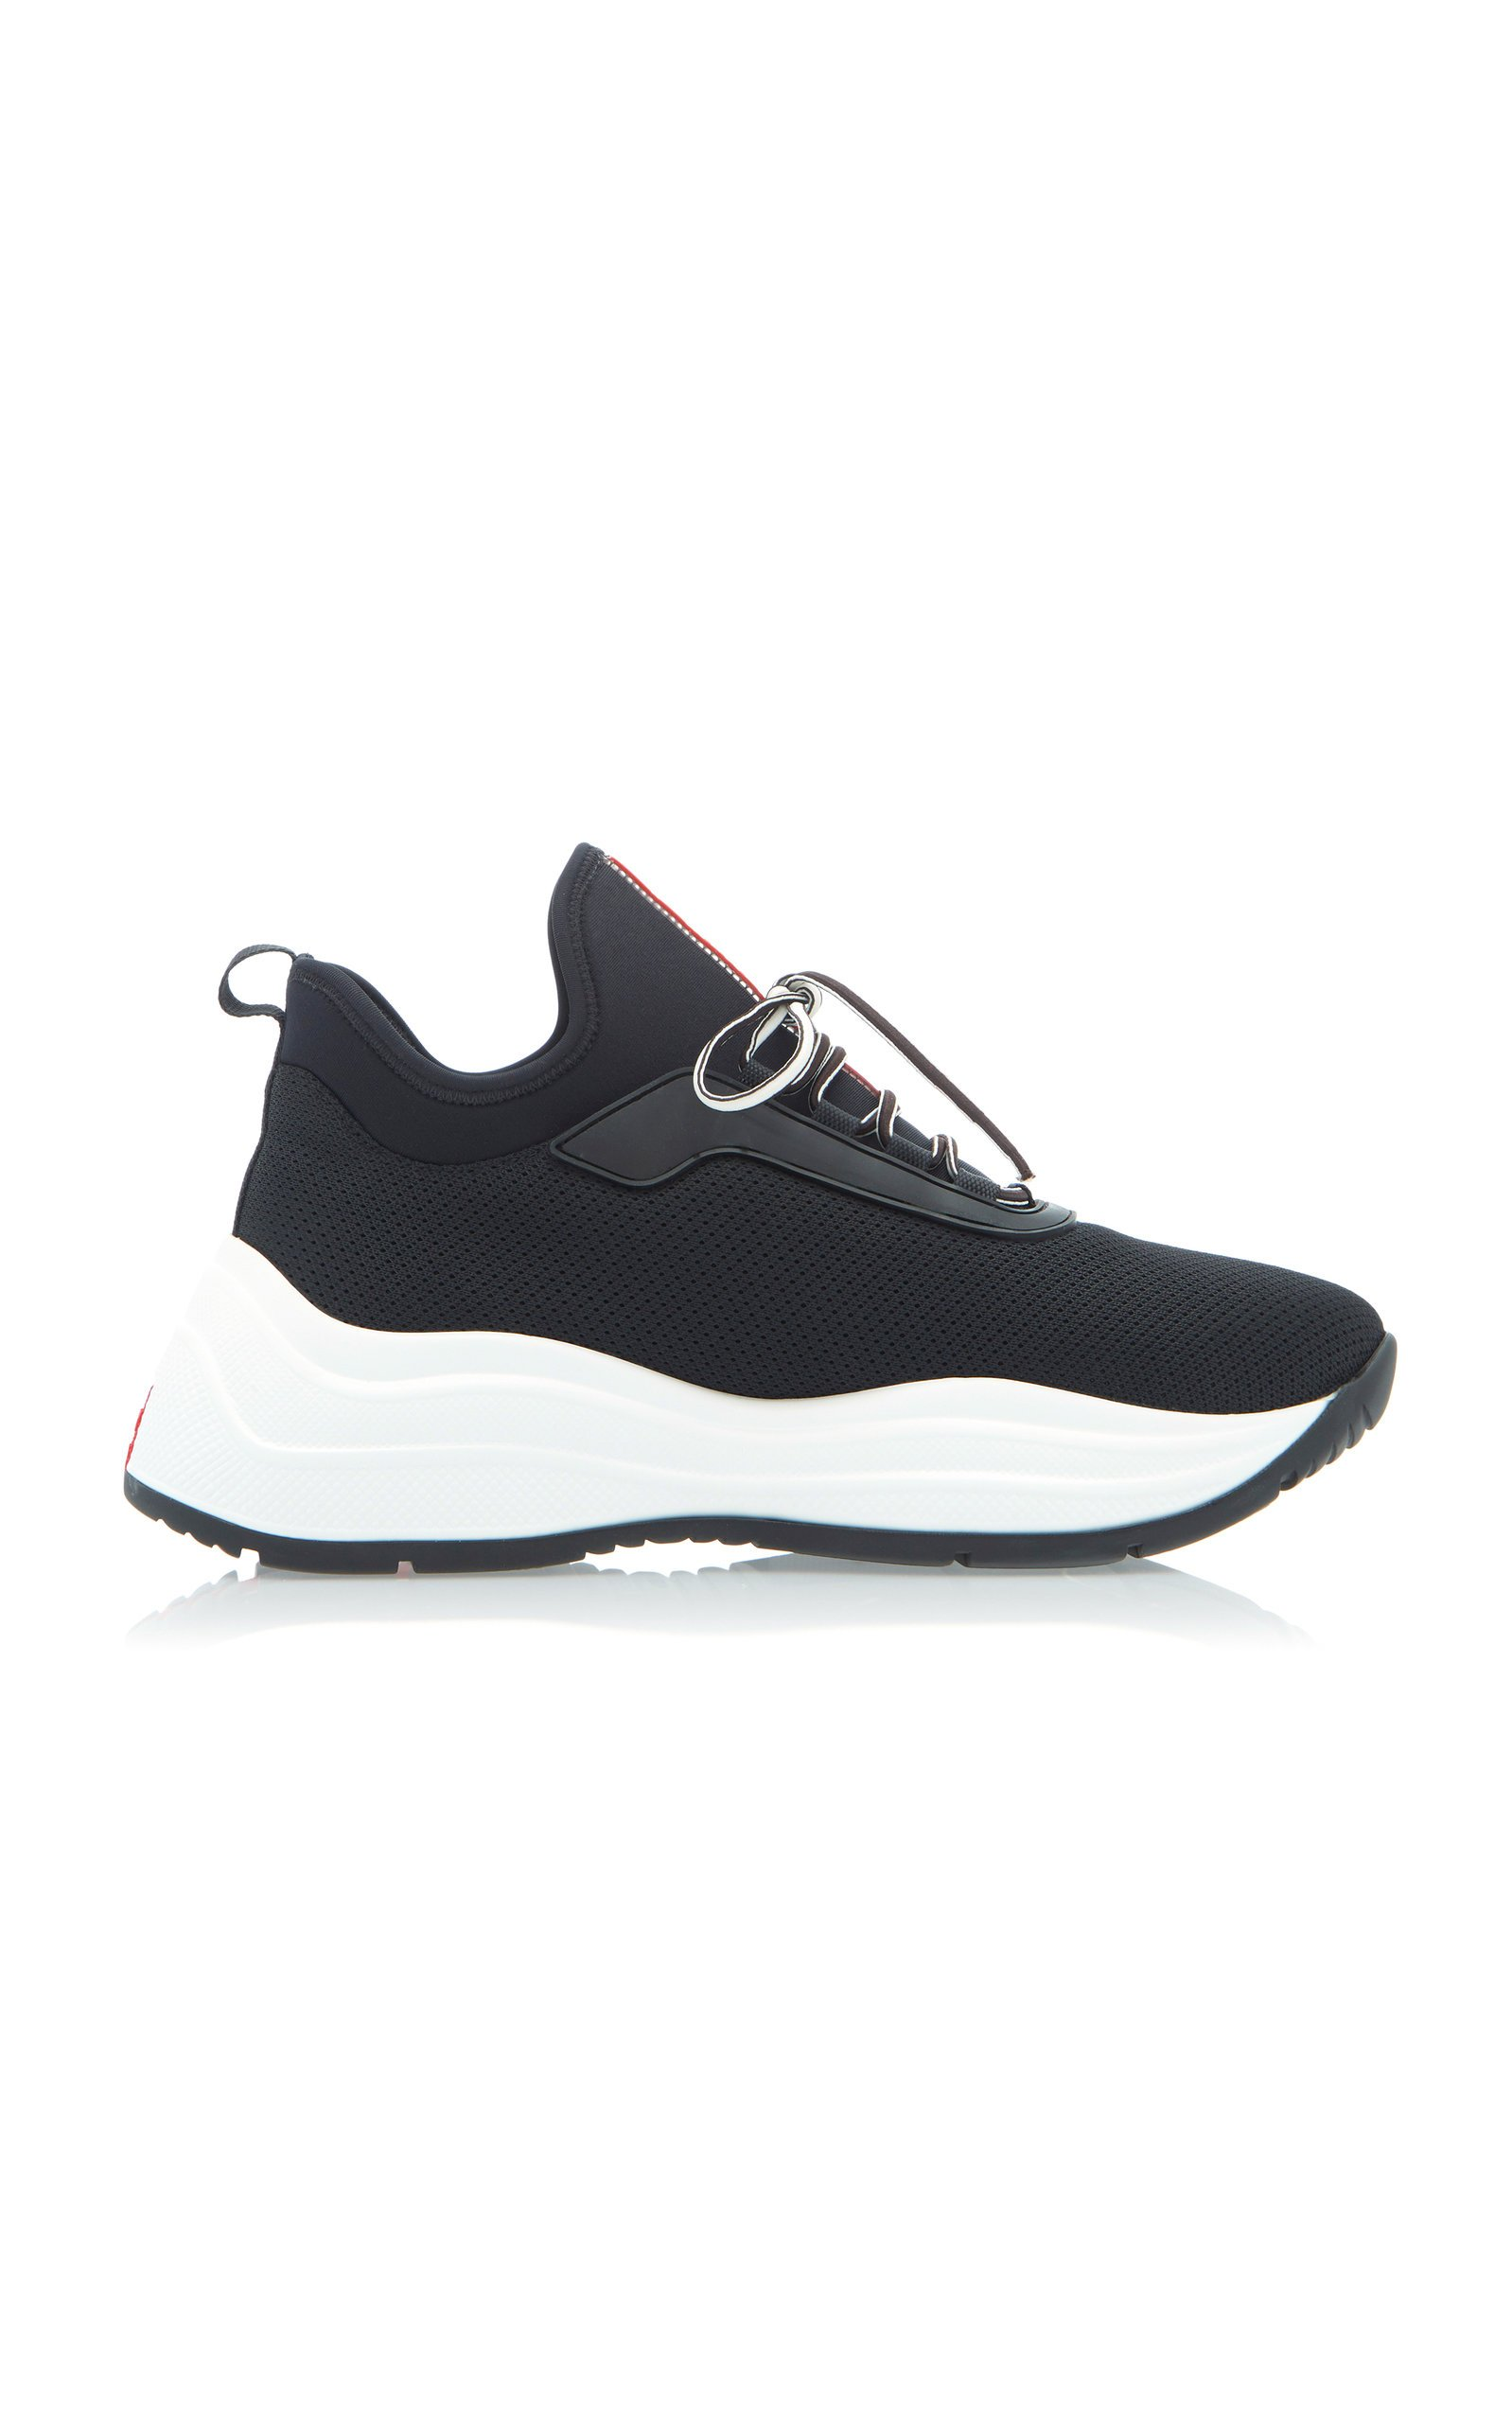 Neoprene And Rubber Sneakers By Prada